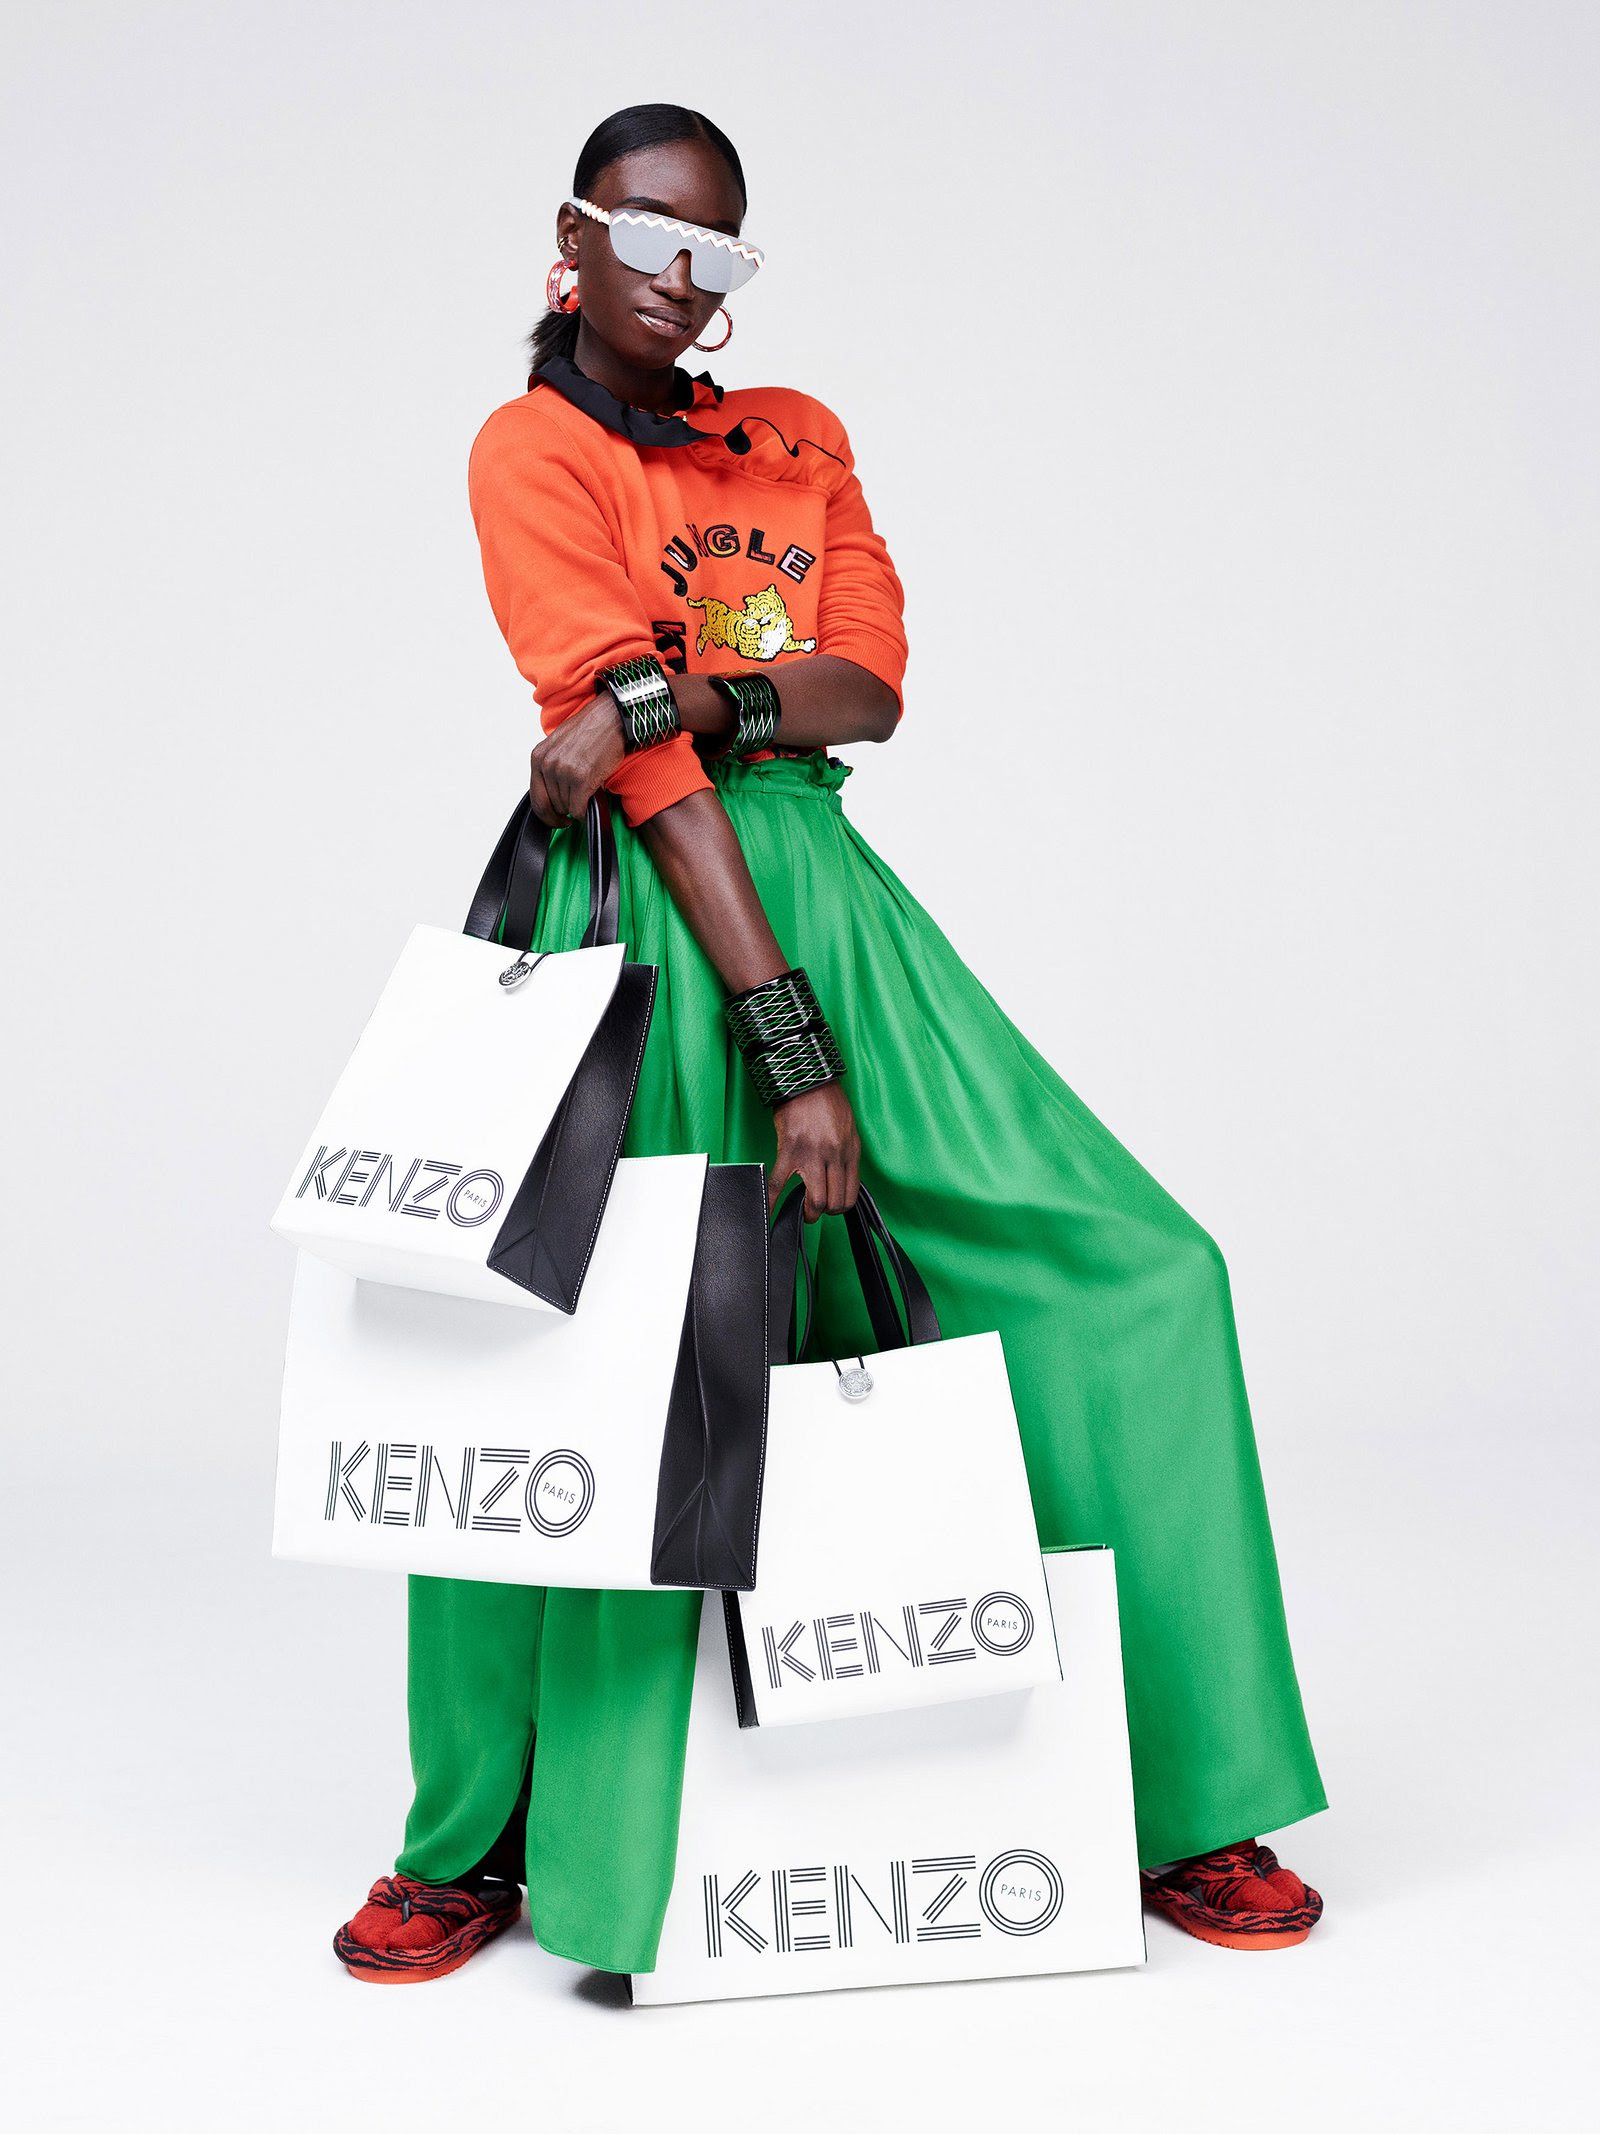 http://media.vogue.com/r/w_1600//wp-content/uploads/2016/10/07/01-kenzo-hm-lookbook.jpg